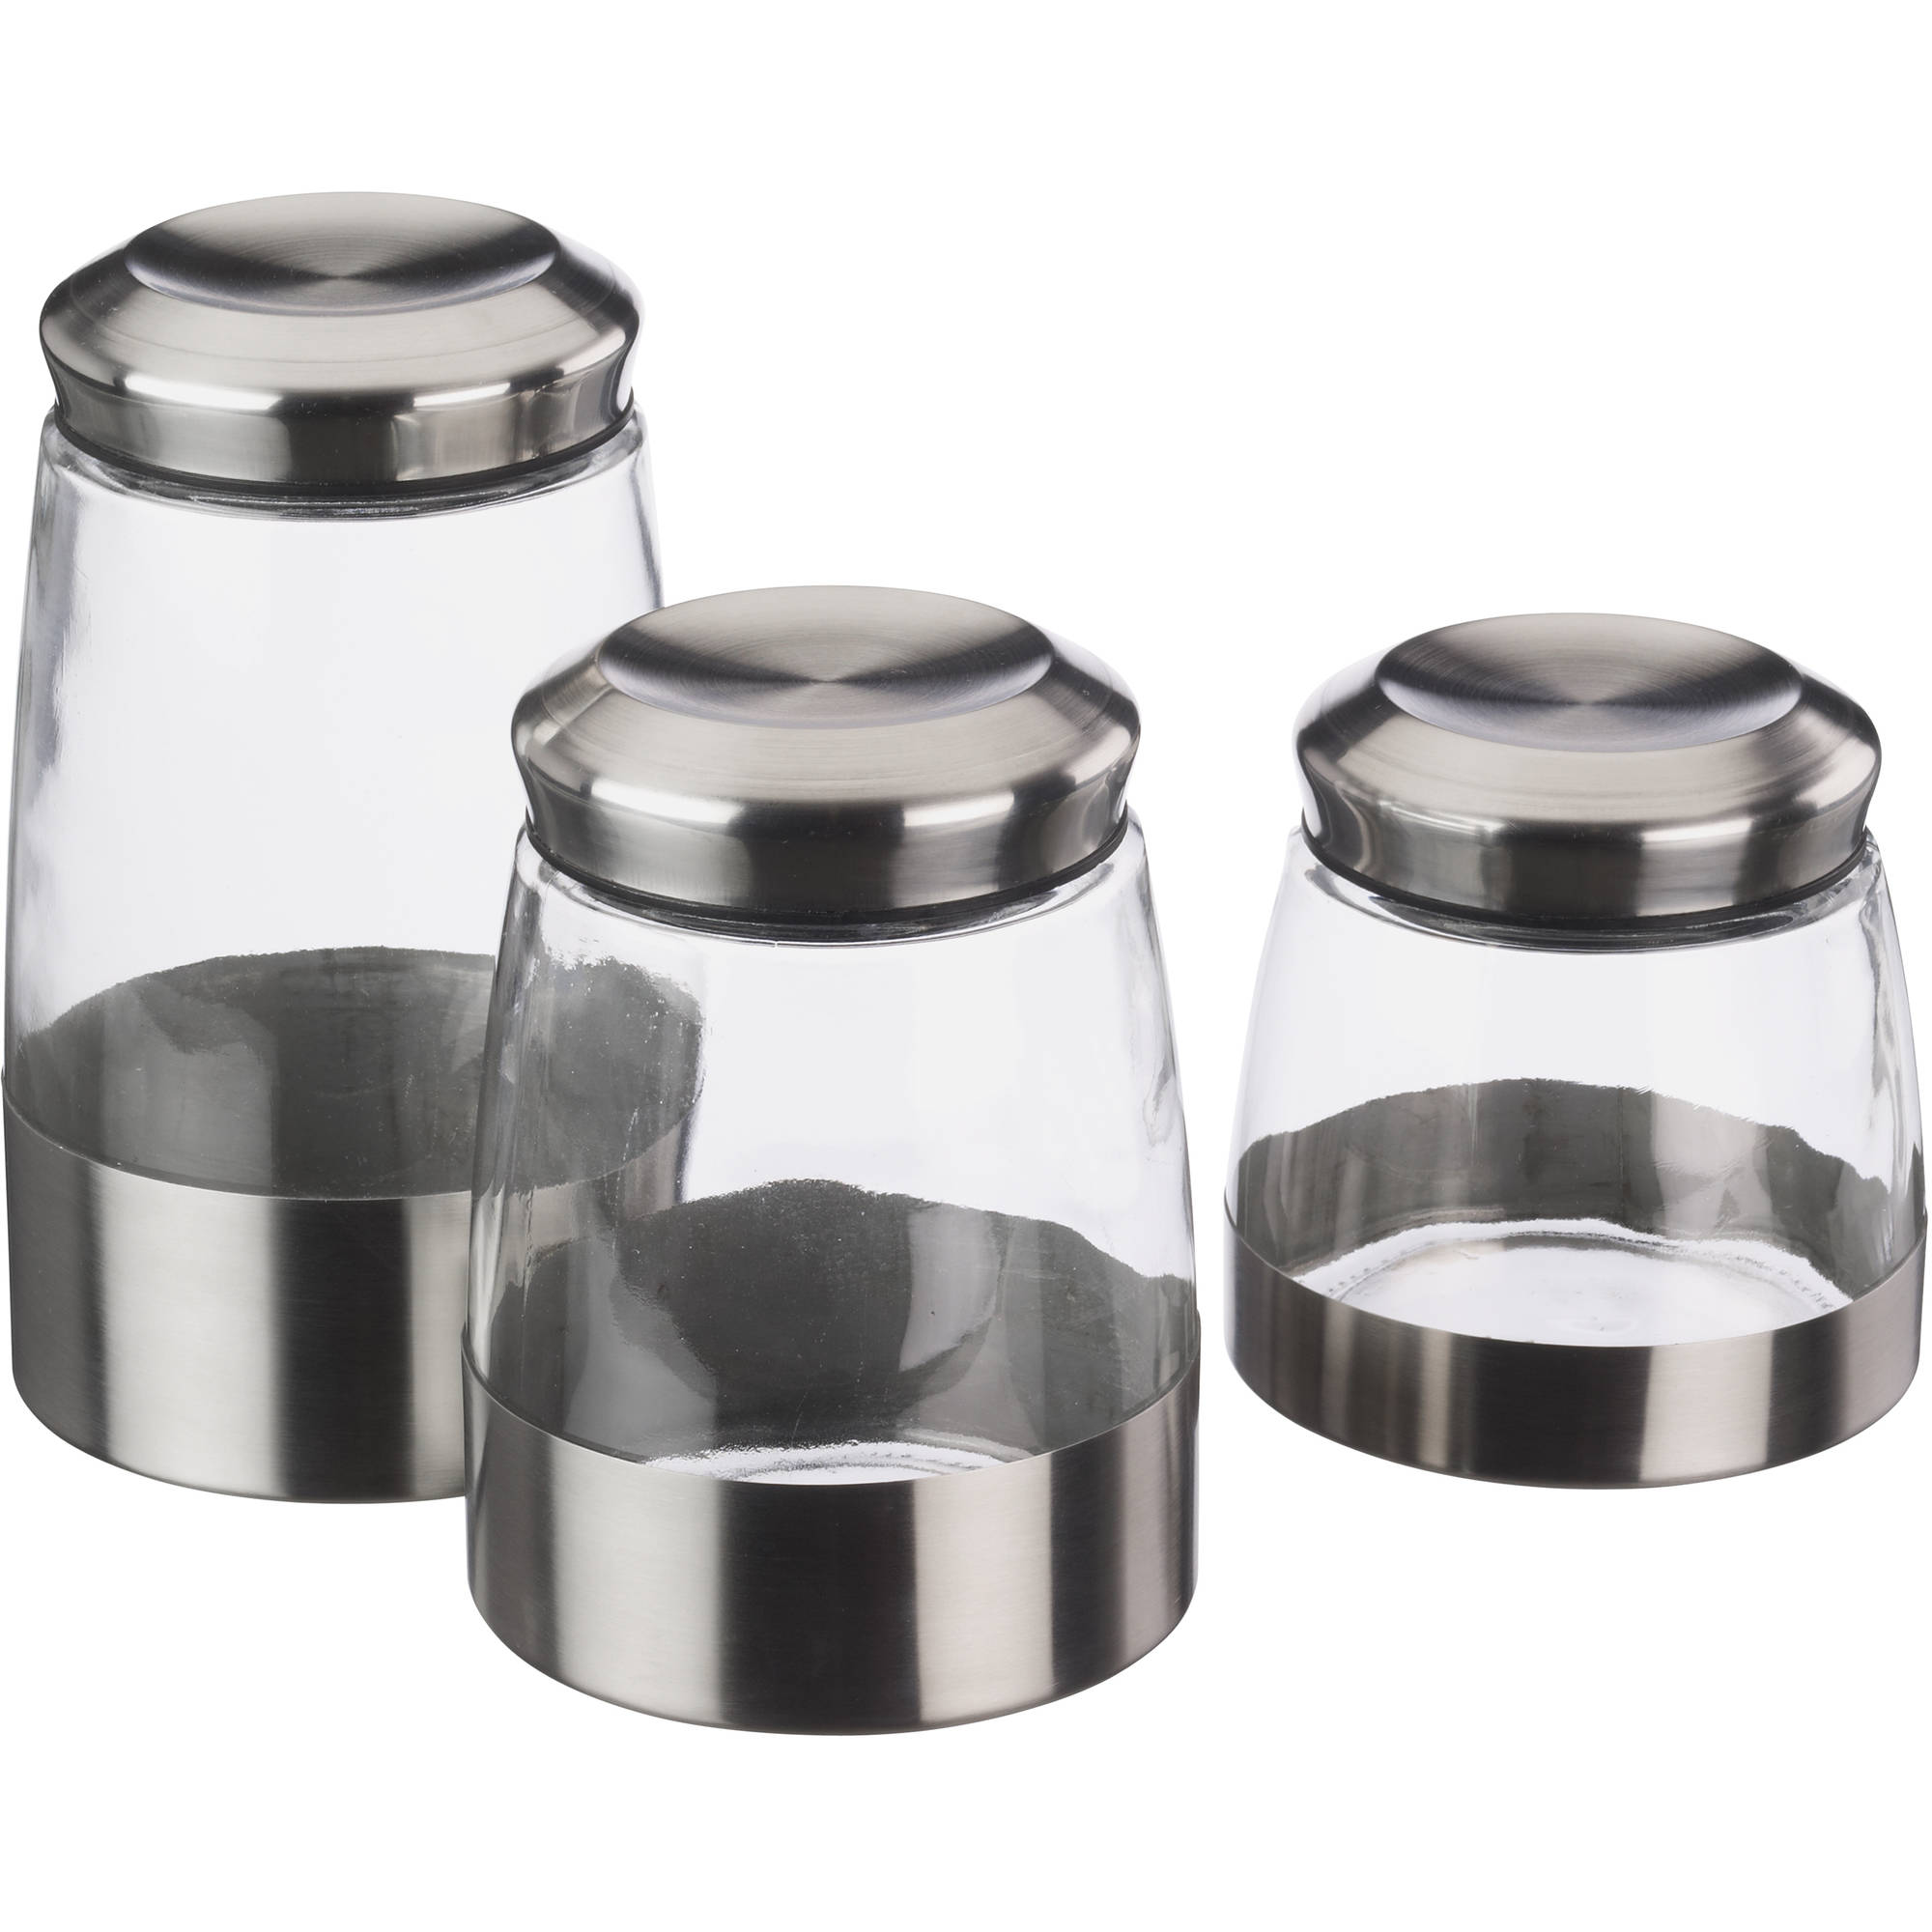 kitchen stainless steel canisters walmart com stainless steel kitchen canister sets unique kitchen